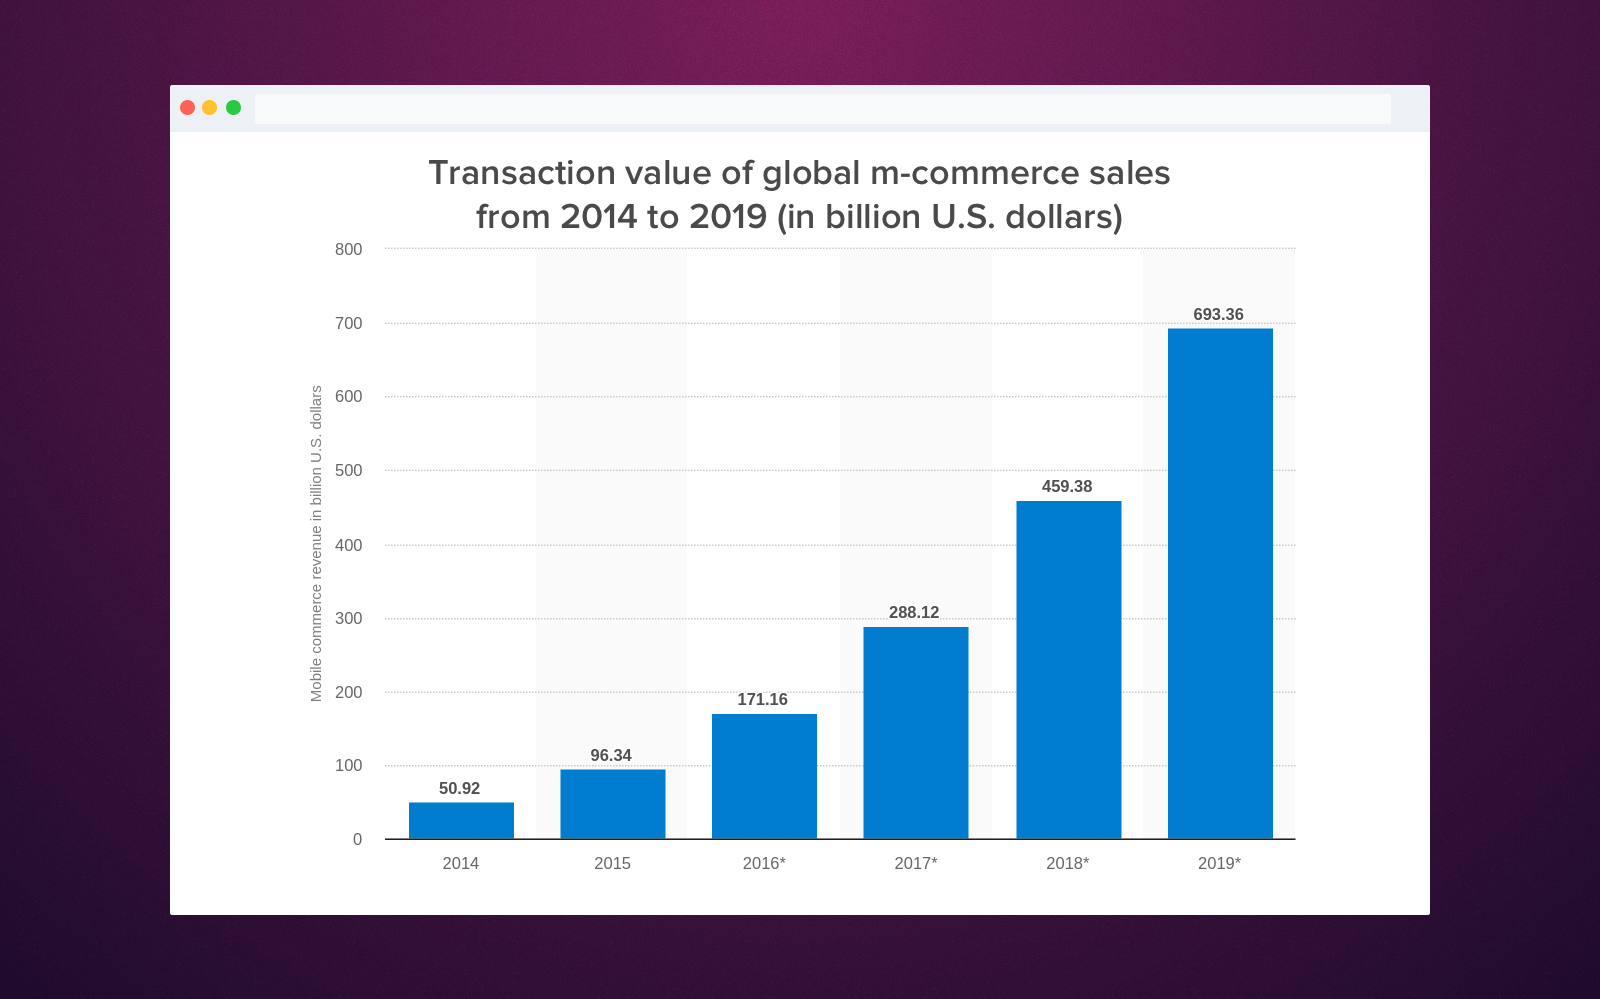 m-commerce apps transaction value